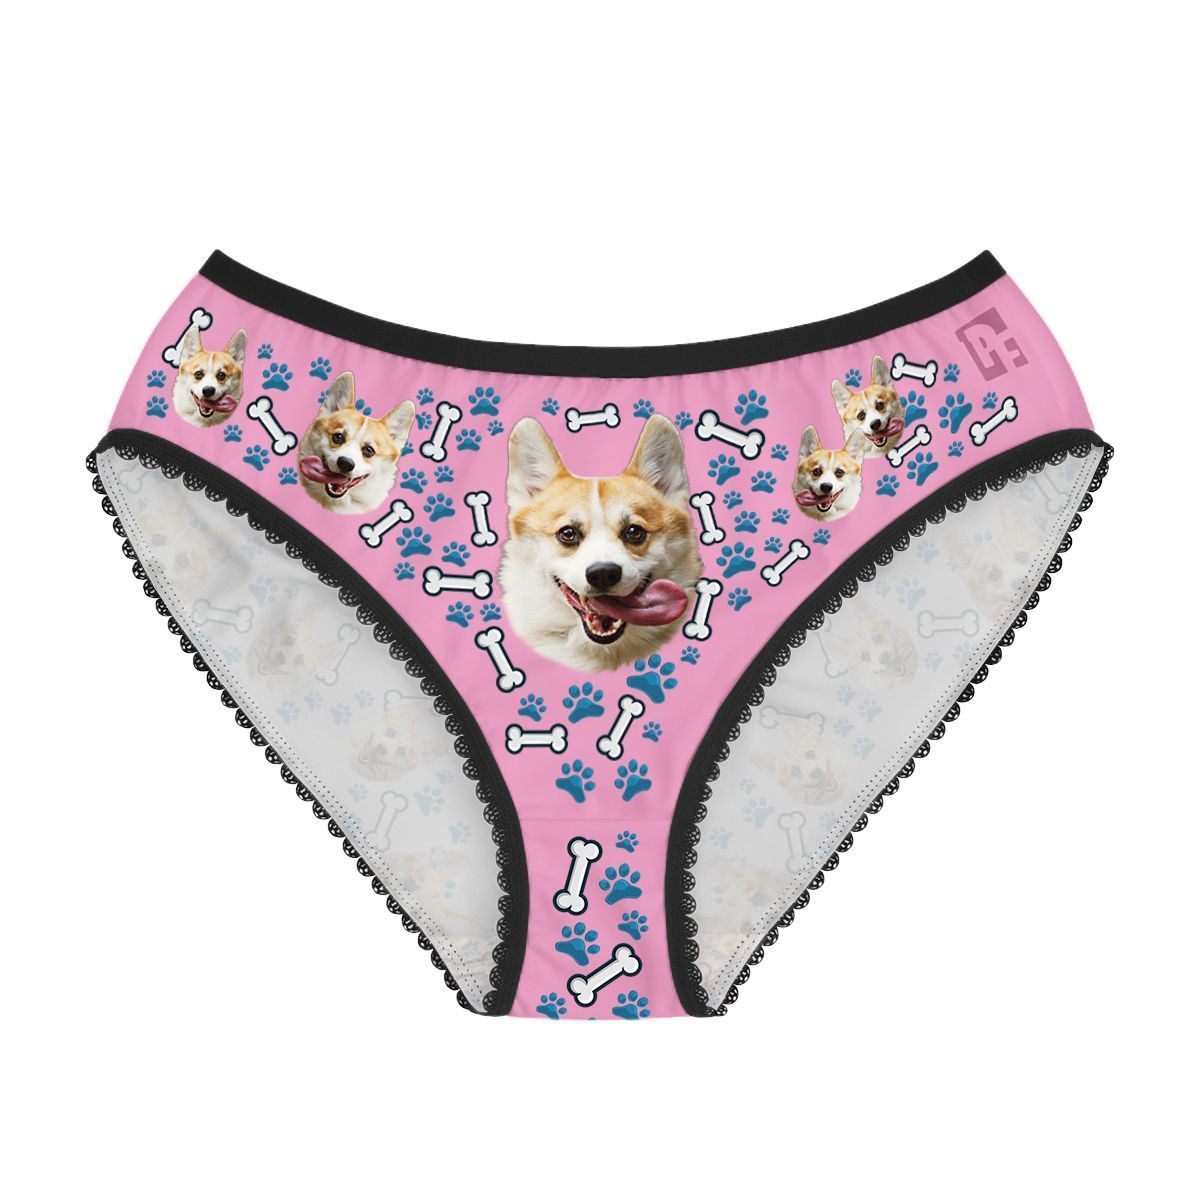 Red Dog women's underwear briefs personalized with photo printed on them